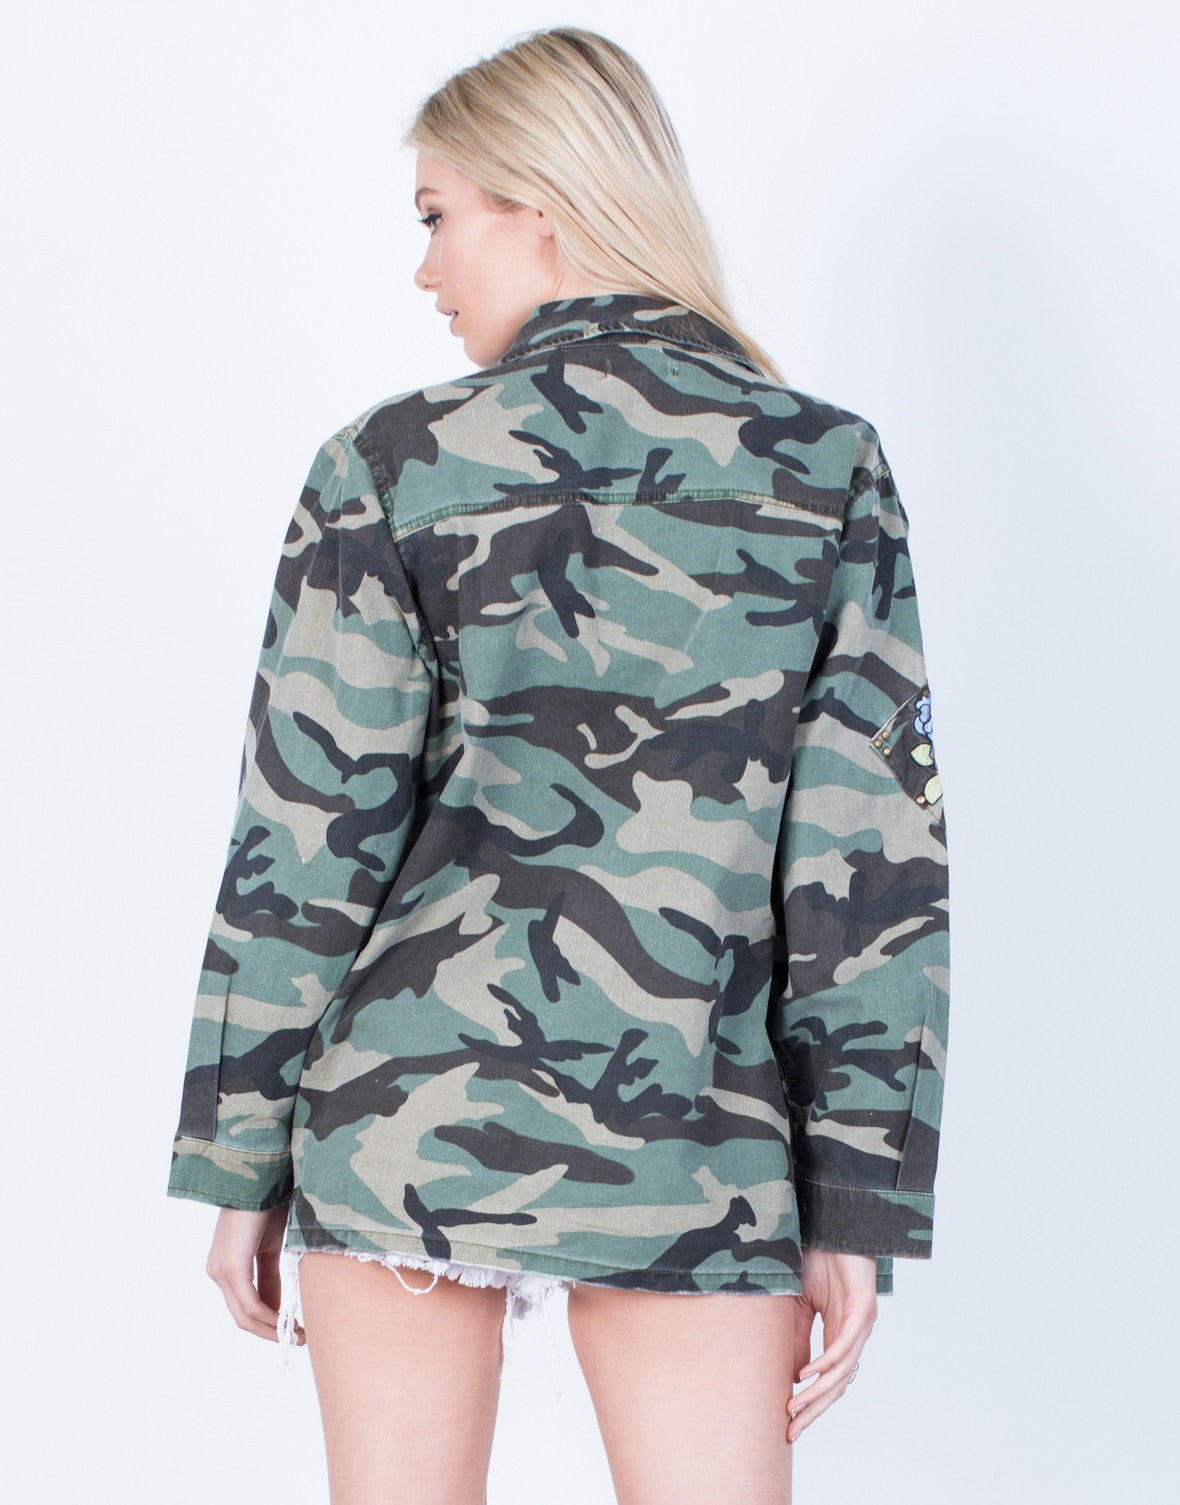 Back View of Floral Patched Camo Jacket